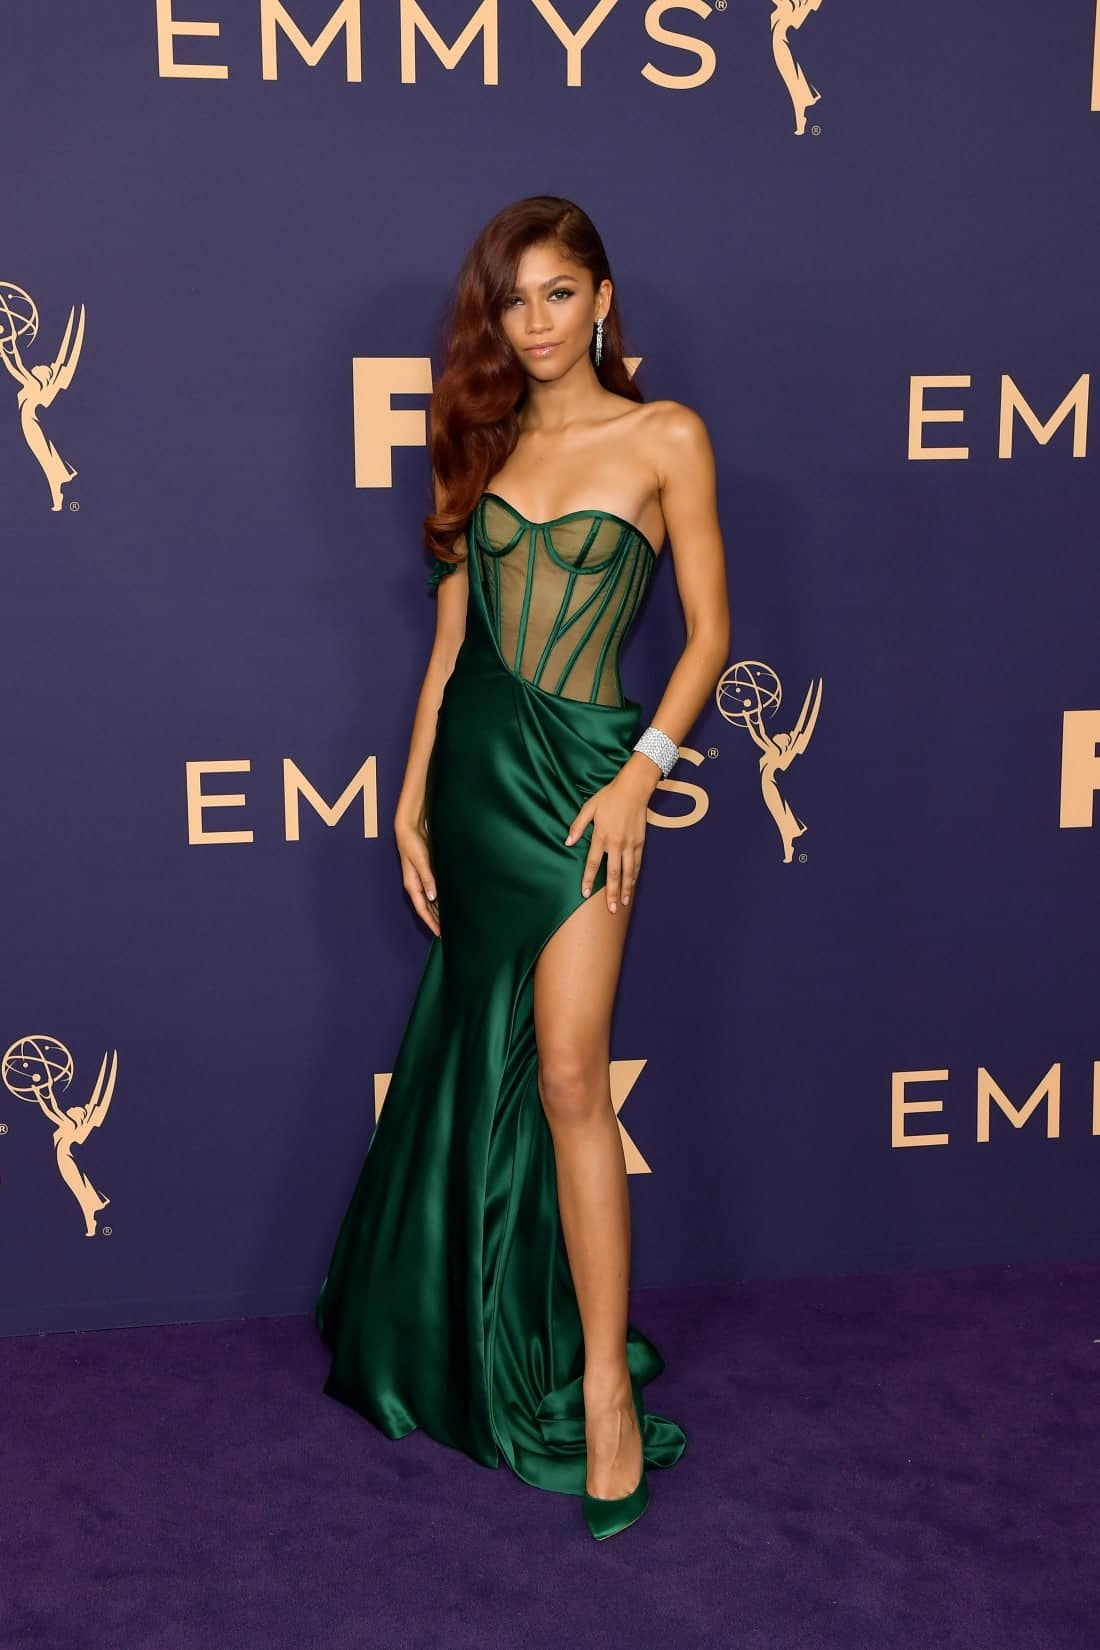 zendaya-71st-emmy-awards-2019-purple-carpet-fox-style-rave